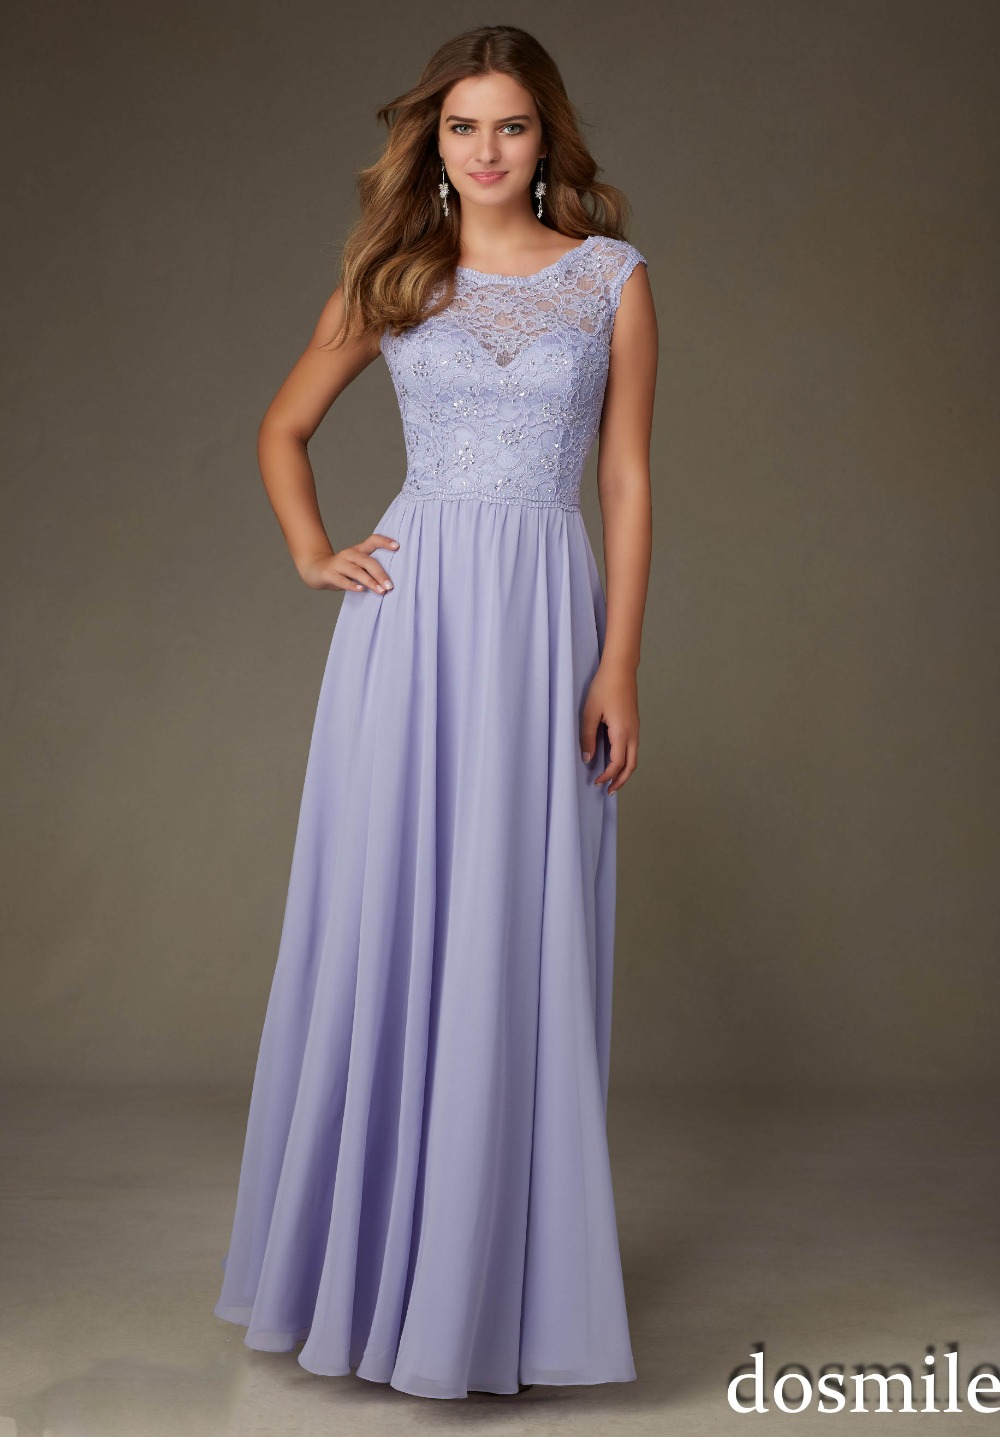 2016 Sleeveless Scoop Neck Lace Purple Long Bridesmaid